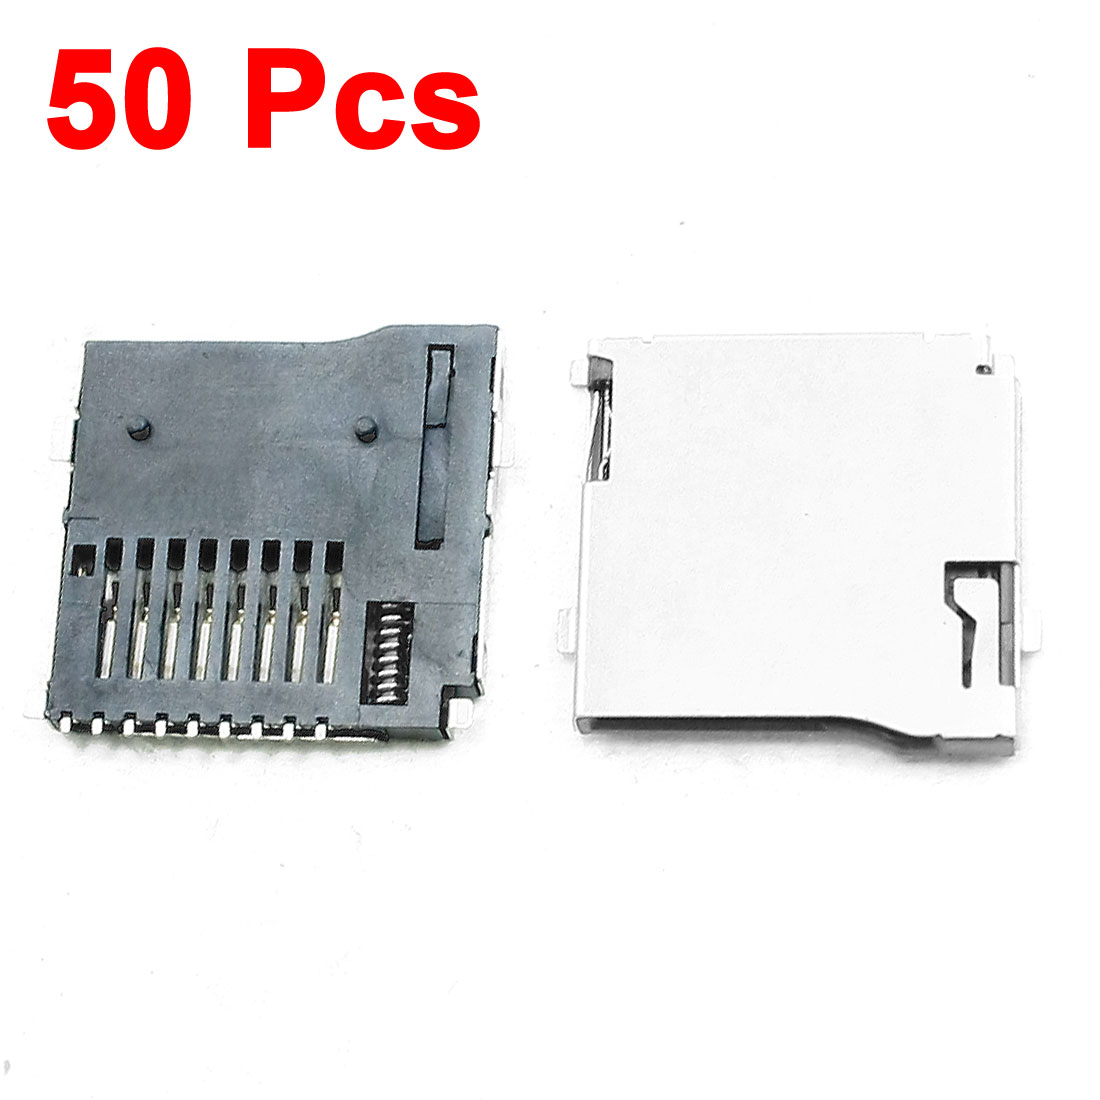 50 Pcs Push-out Type Stainless Steel TF Micro SD Card Sockets Slots